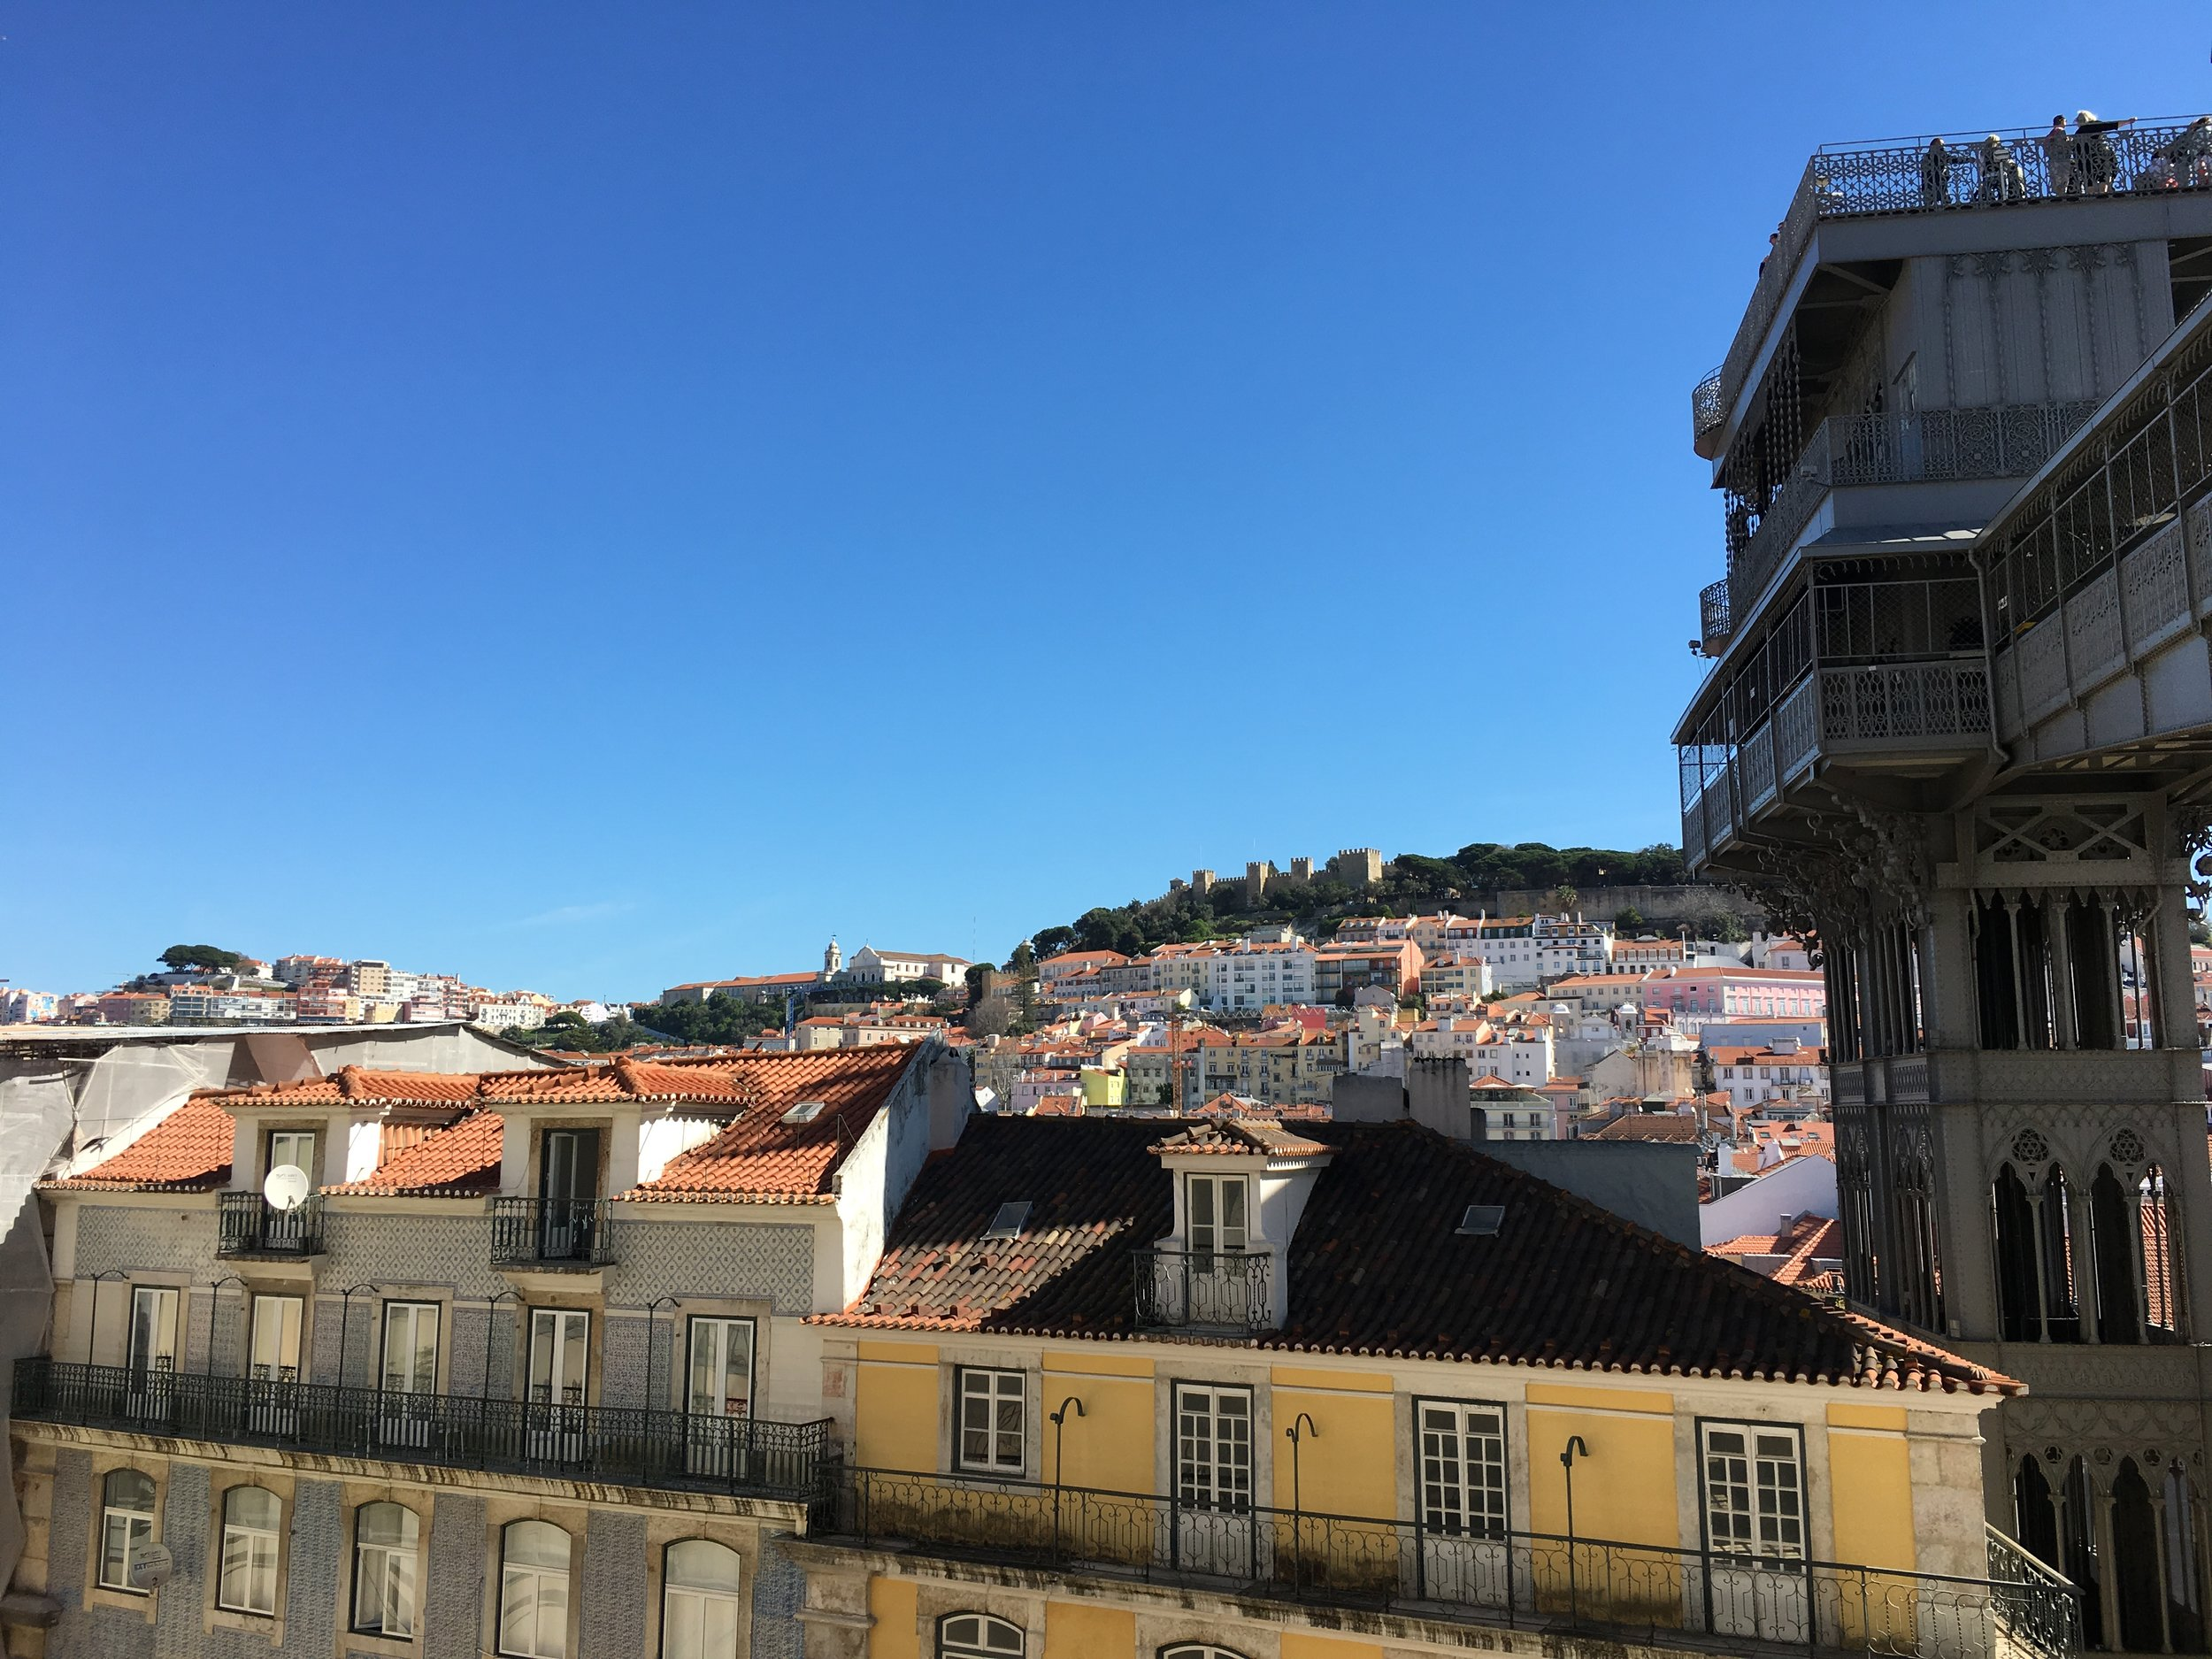 Views from Igreja do Carmo over Lisbon's tiles rooftops and the São Jorge castle. The neo-gothic lift - Elevador de Santa Justa to the right.